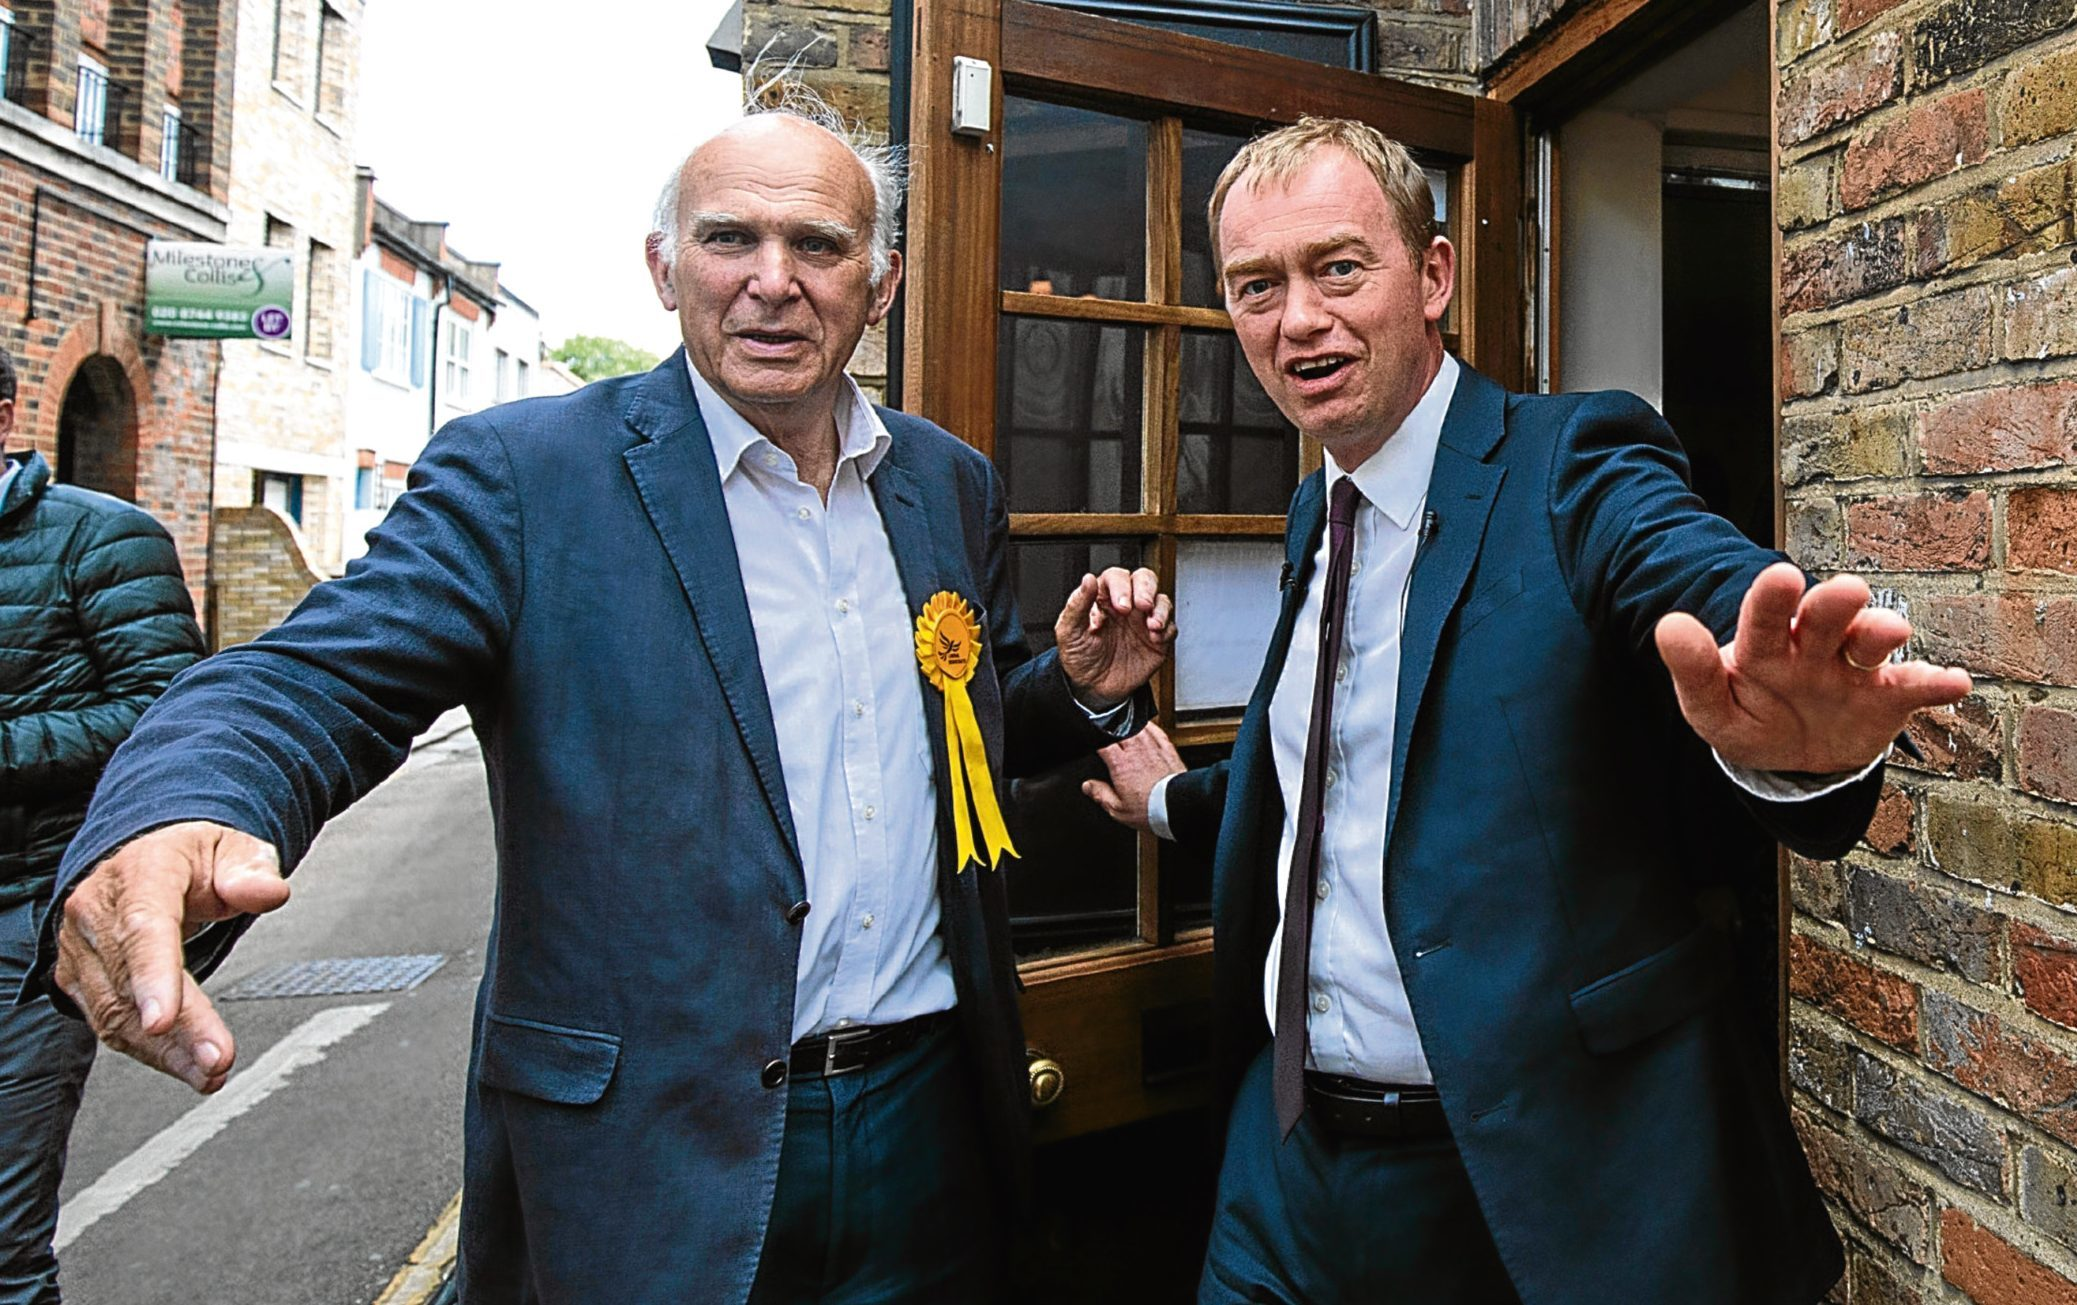 Vince Cable and Tim Farron campaigning during the General Election.